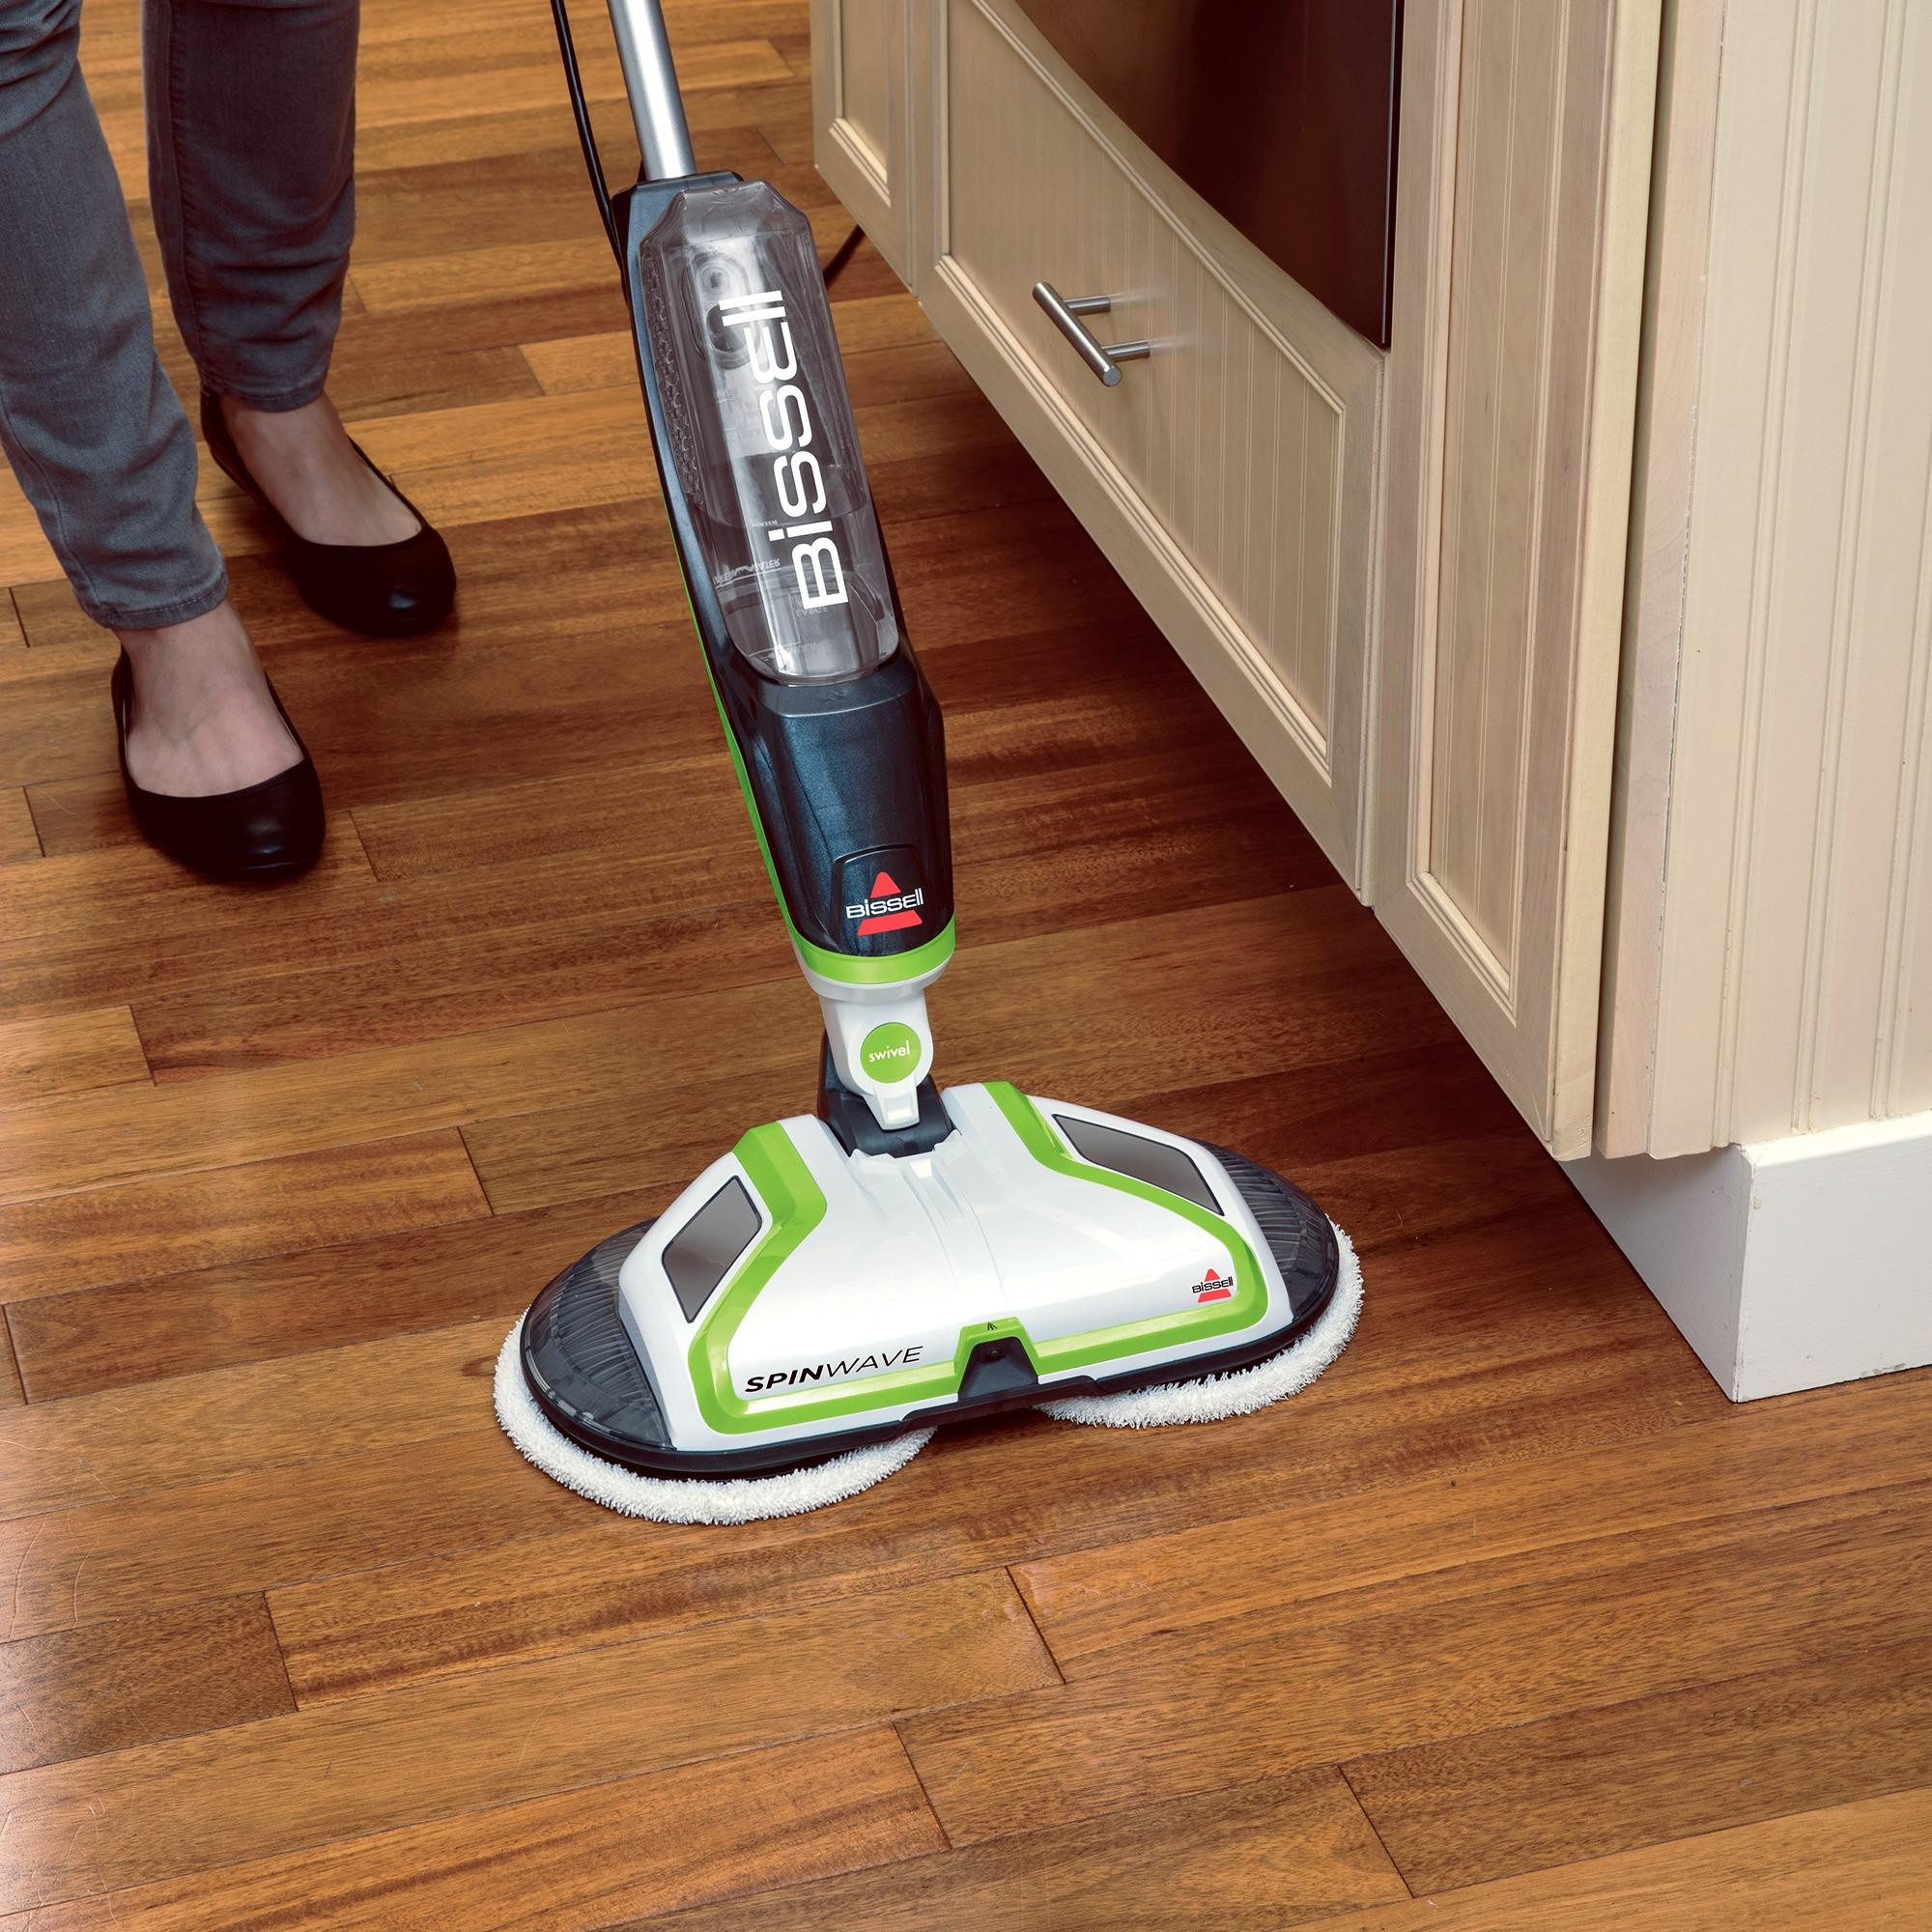 bona hardwood floor mop express of bona ultimate hardwood floor care kit blue white kits floor with bona ultimate hardwood floor care kit blue white kits bissell spinwave powered hard floor mop multi